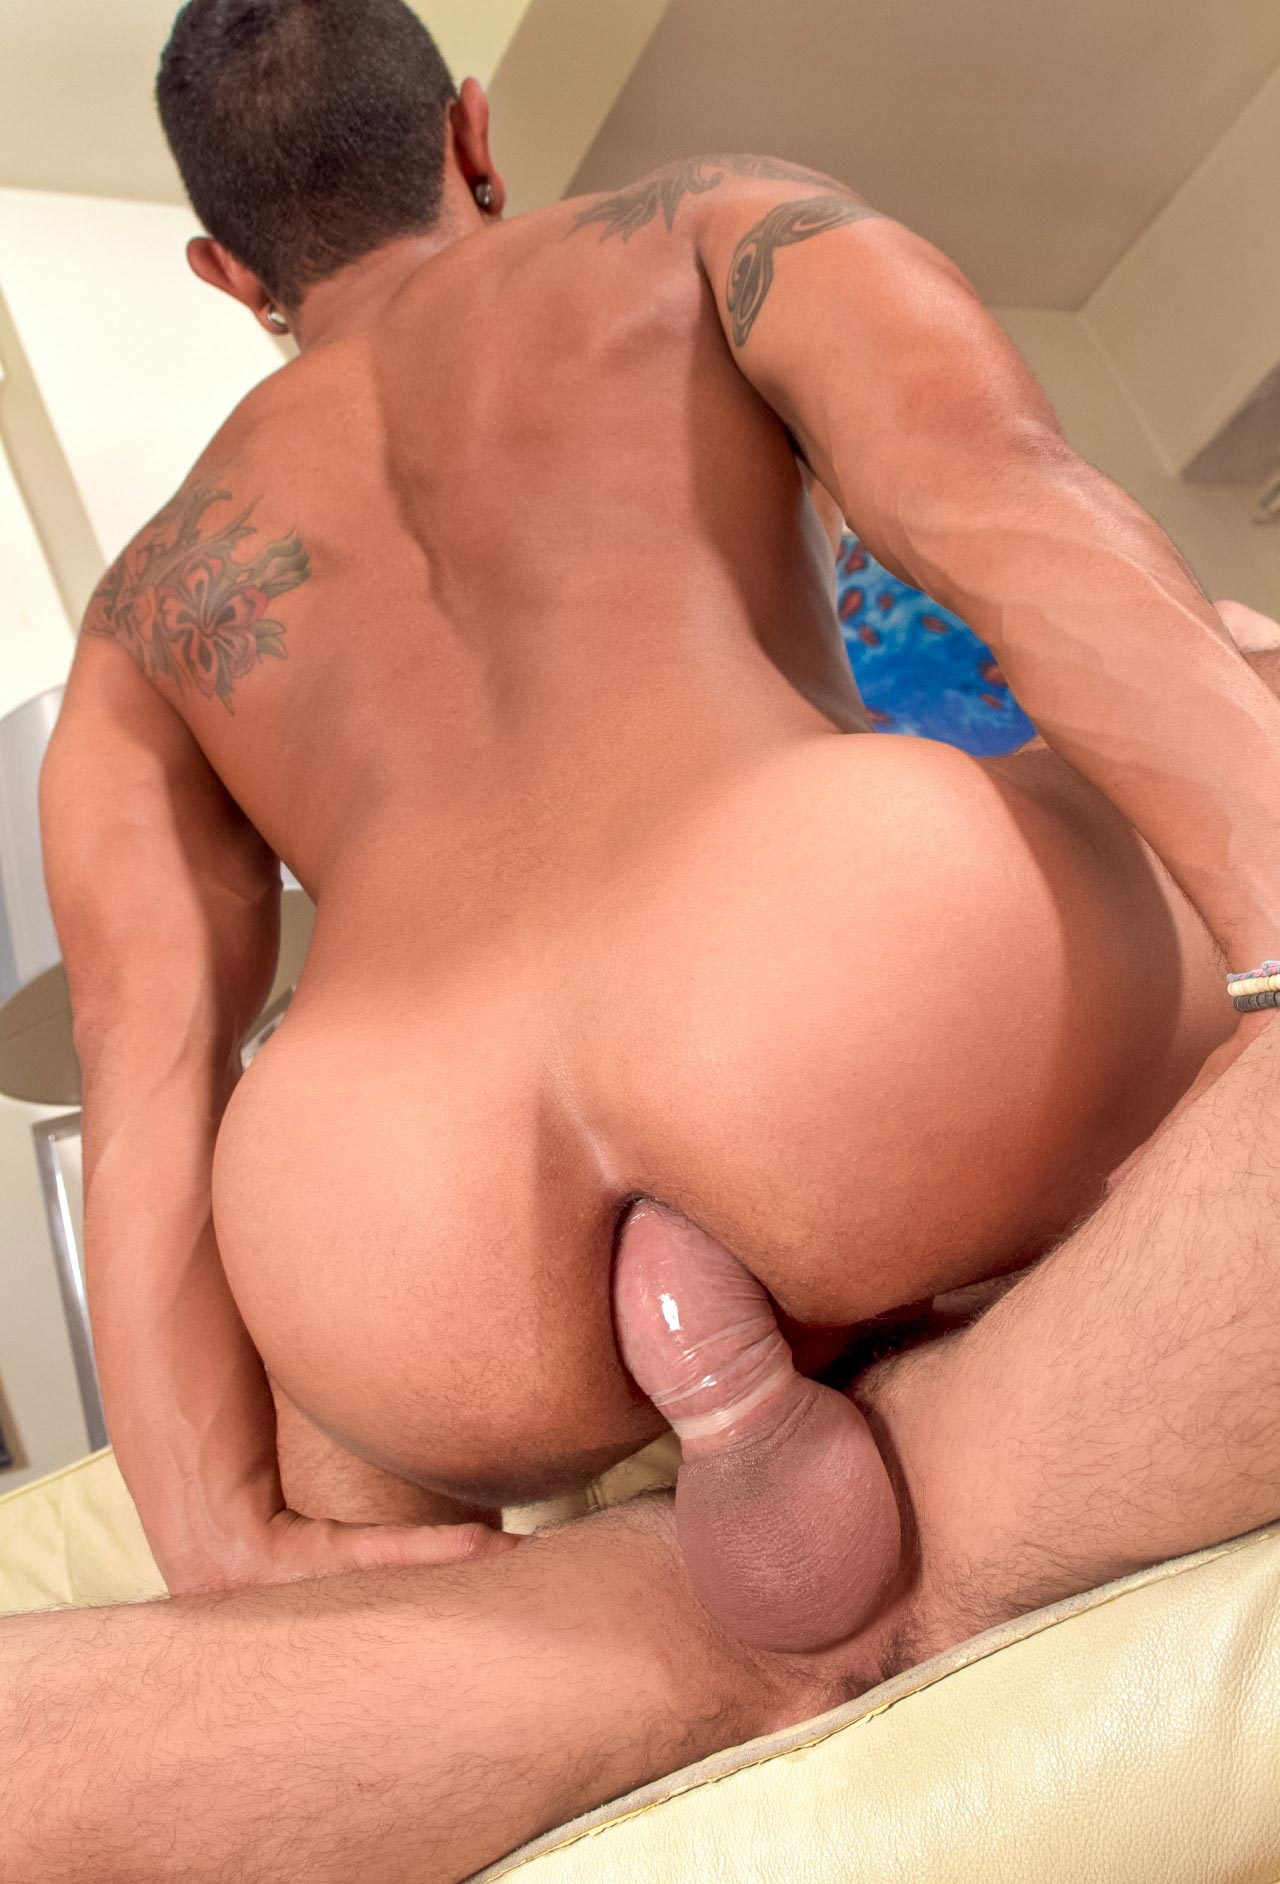 pollas gigantes videos de porno gay